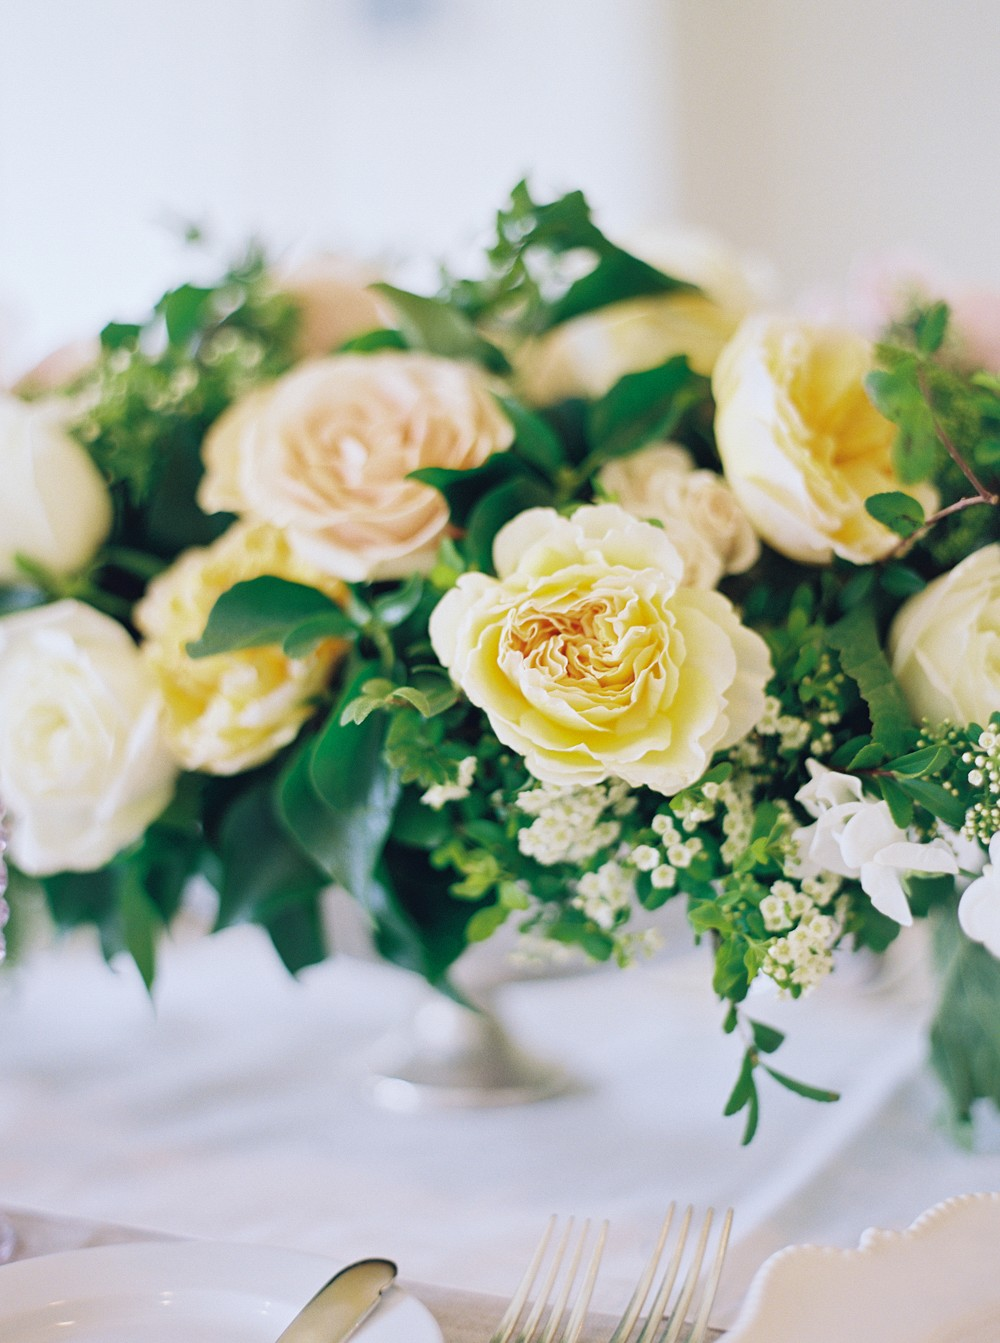 Buttercream colored wedding centerpiece | Sophisticated Real Wedding in Ontario by When He Found Her on Wedding Sparrow